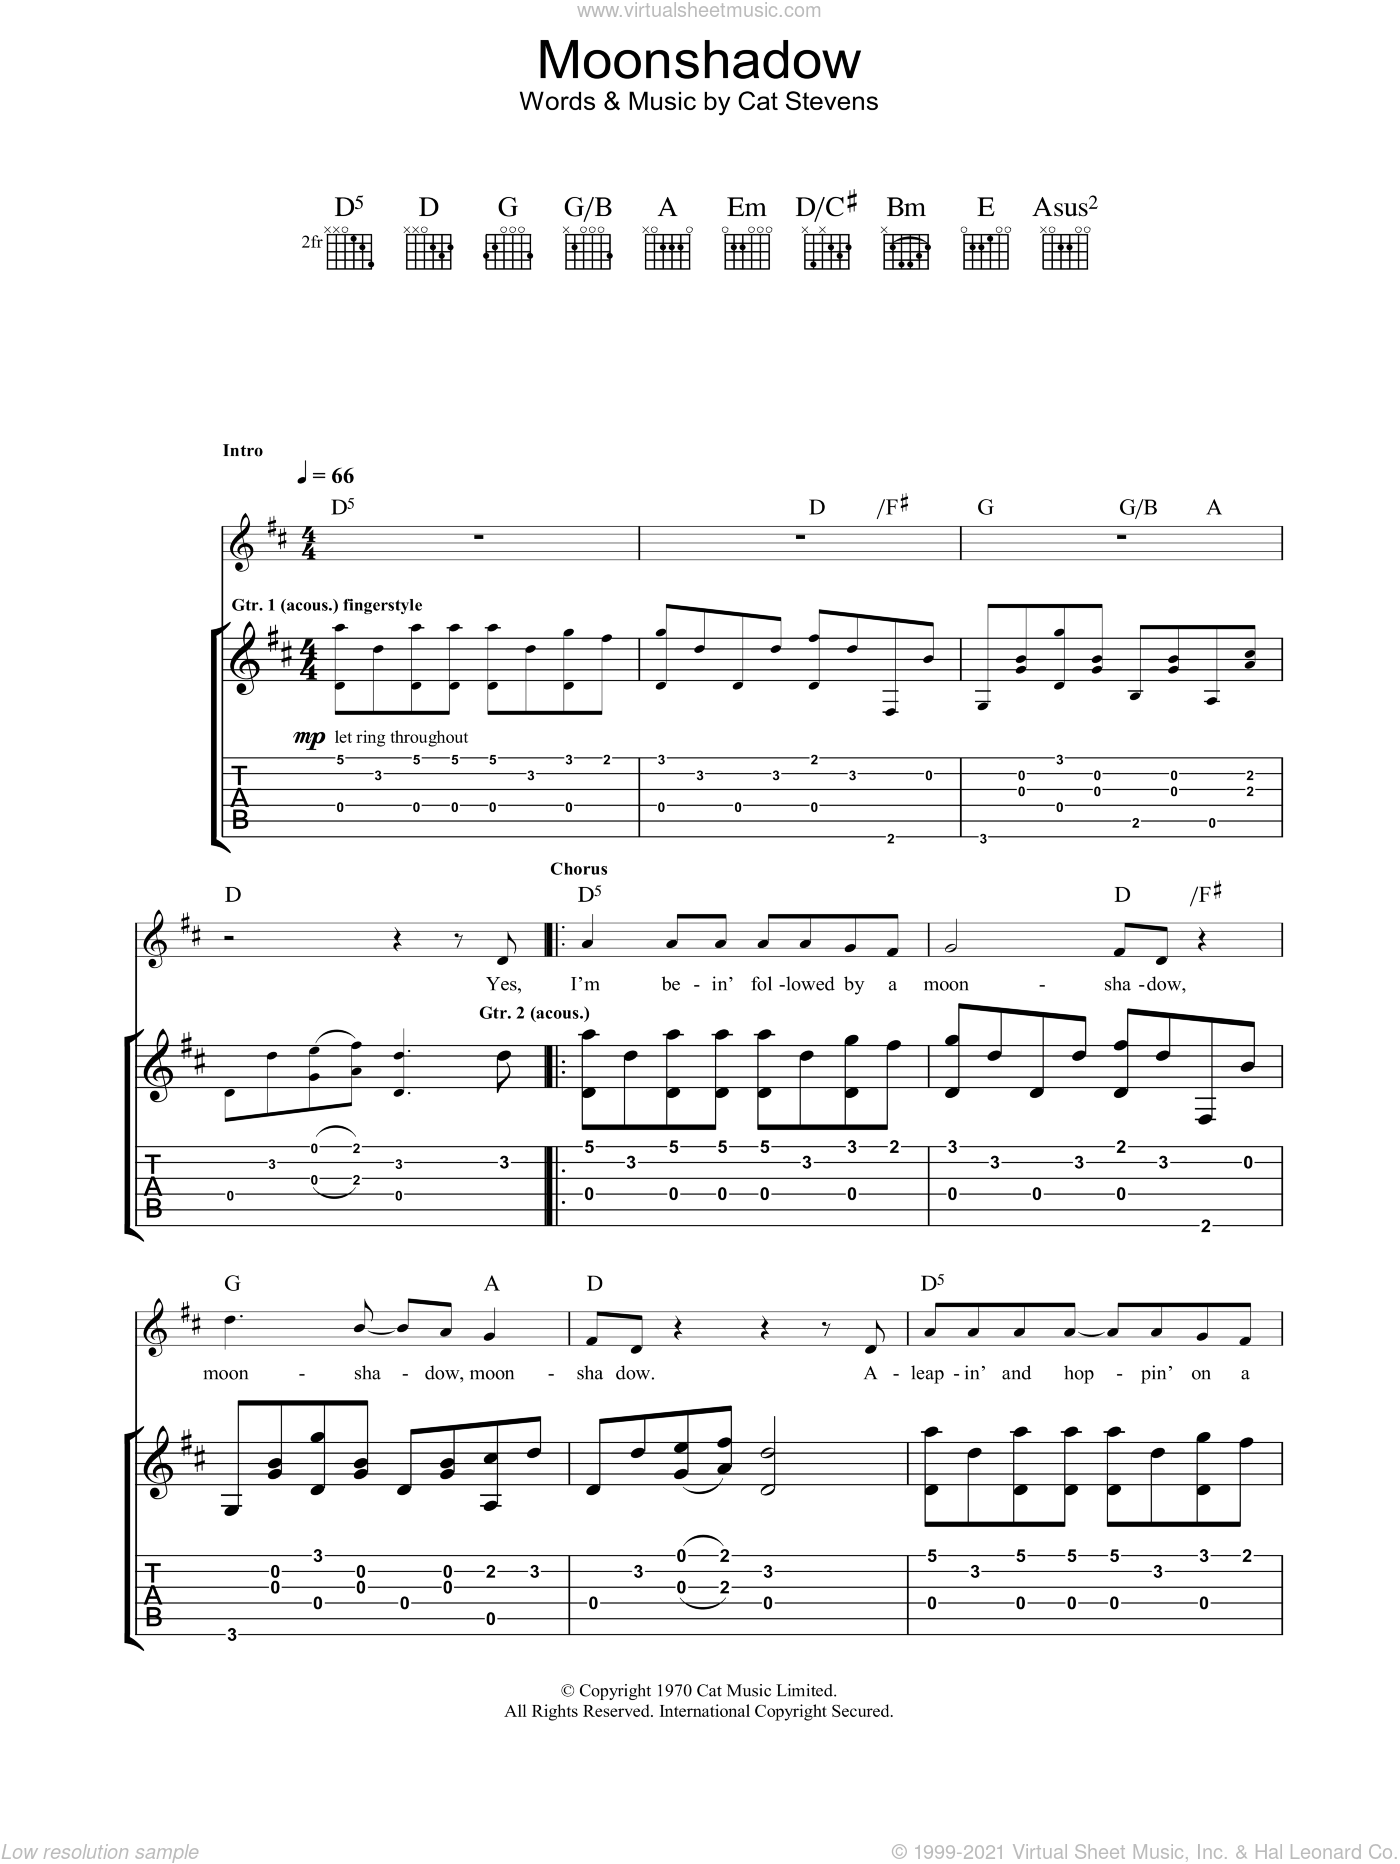 Moonshadow sheet music for guitar (tablature) by Cat Stevens